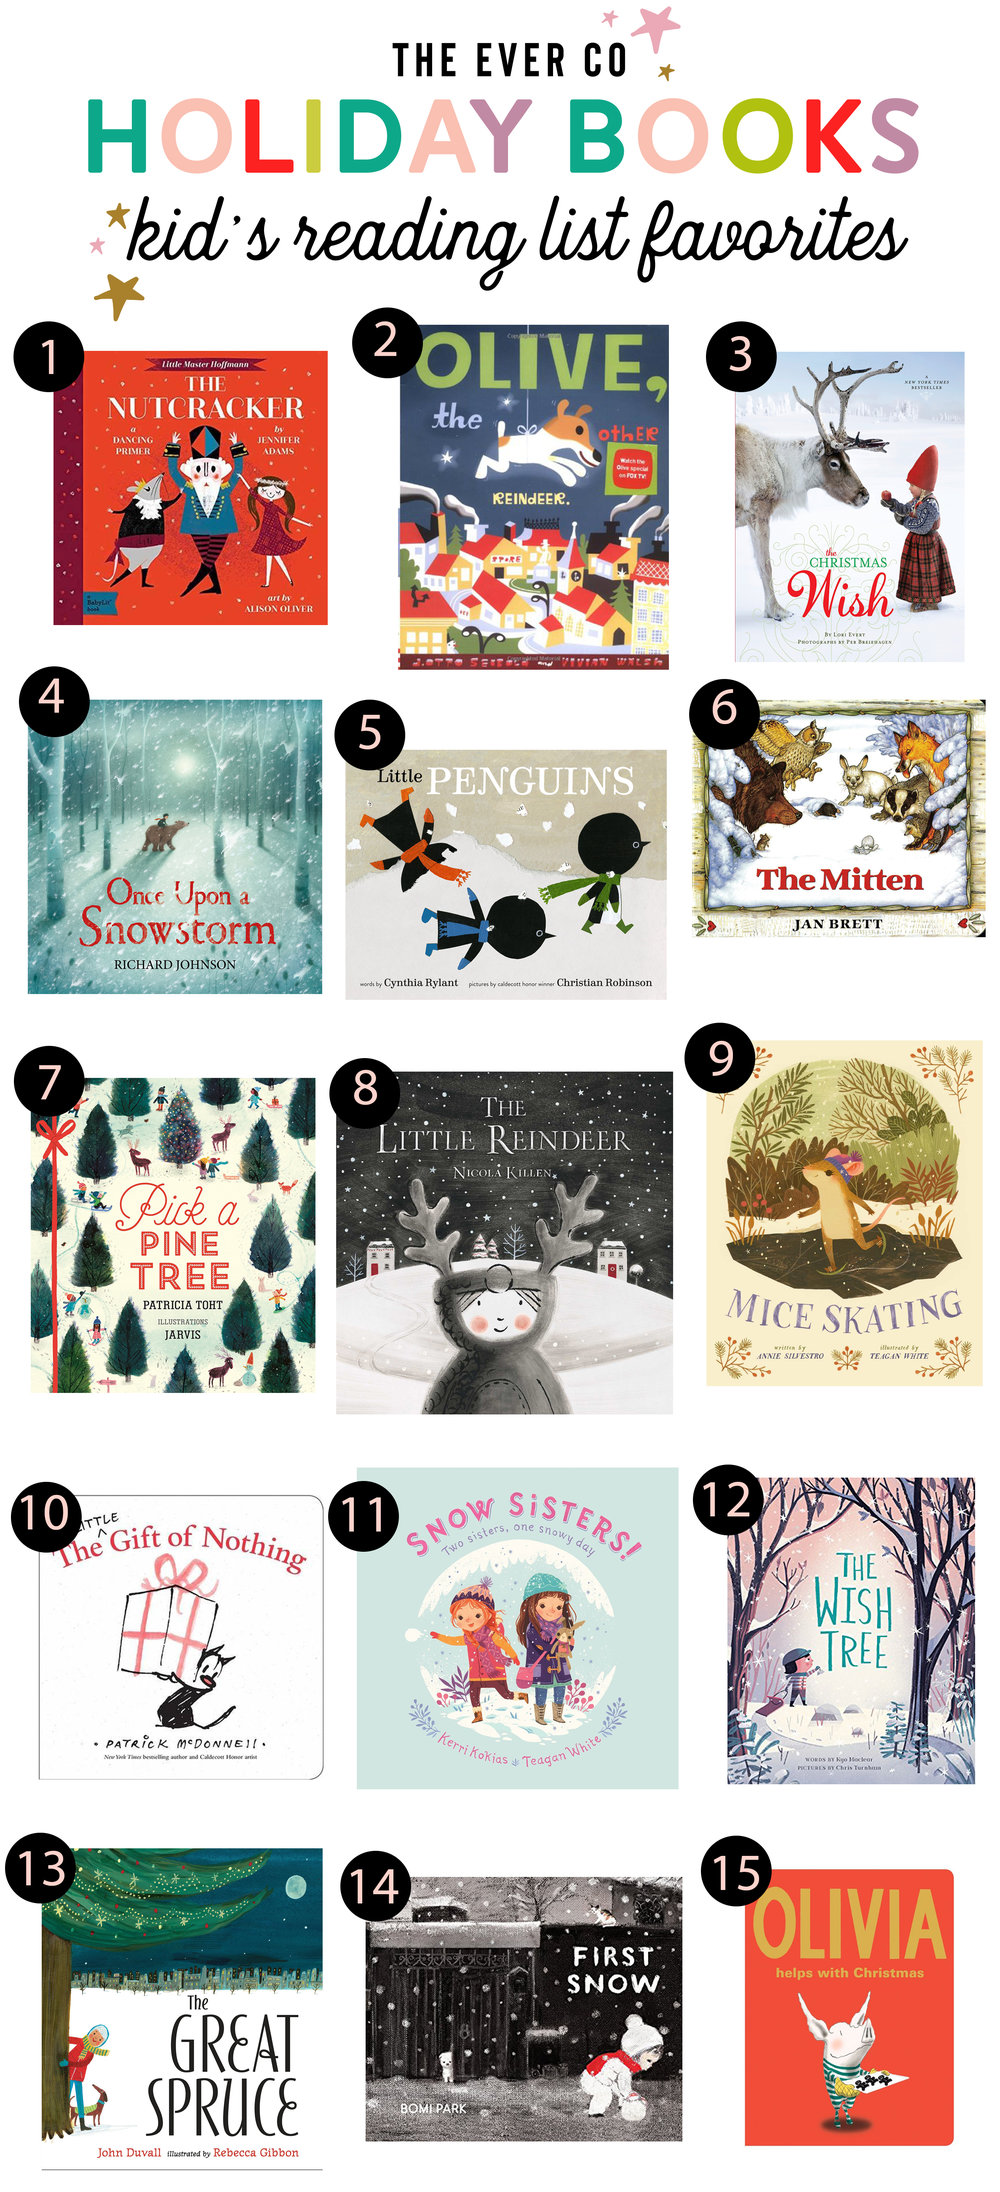 the ever co christmas holiday book roundup